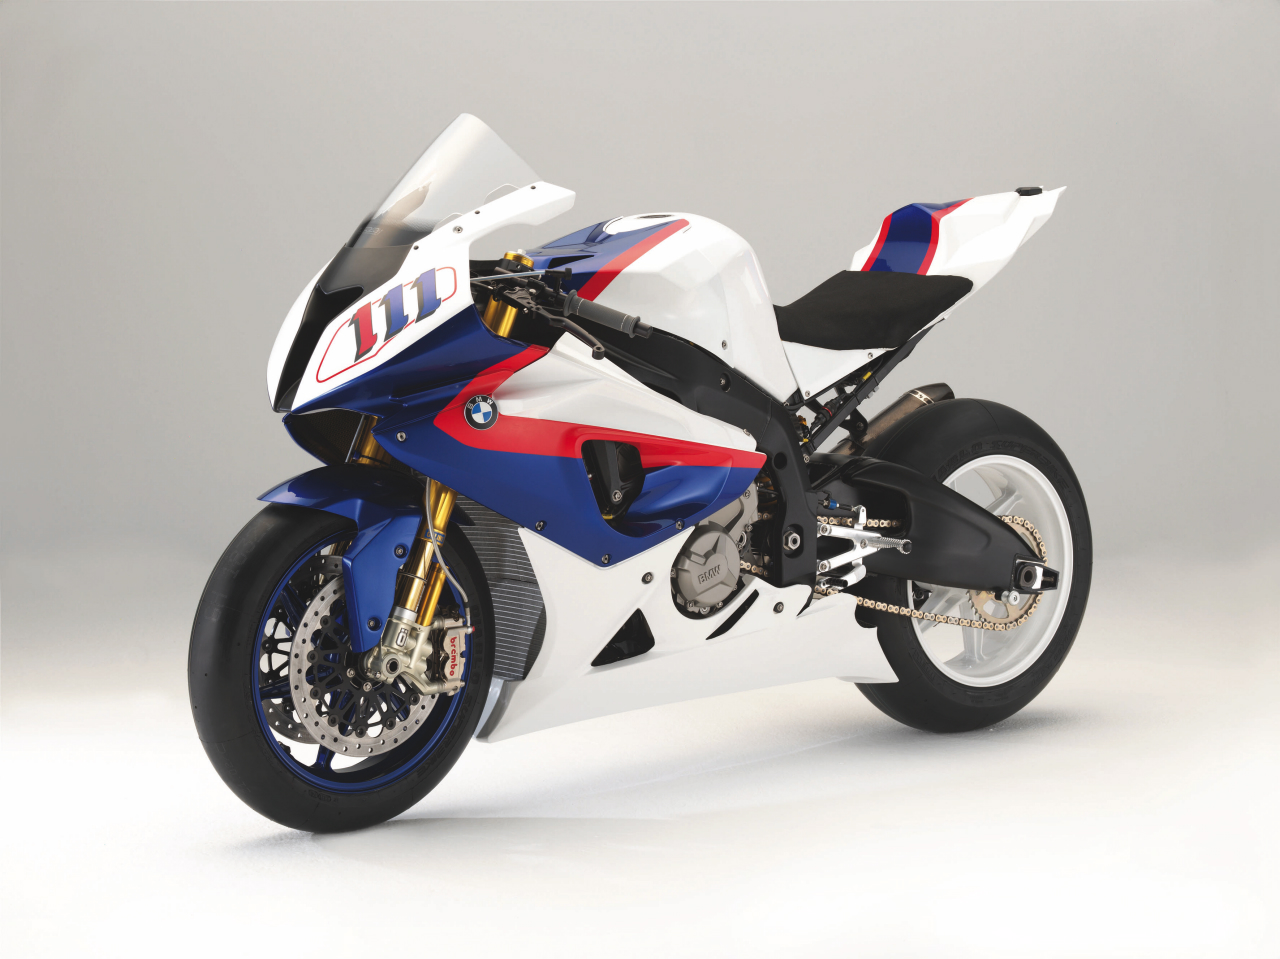 bmw s1000rr features and specifications vehicle summary name s1000rr